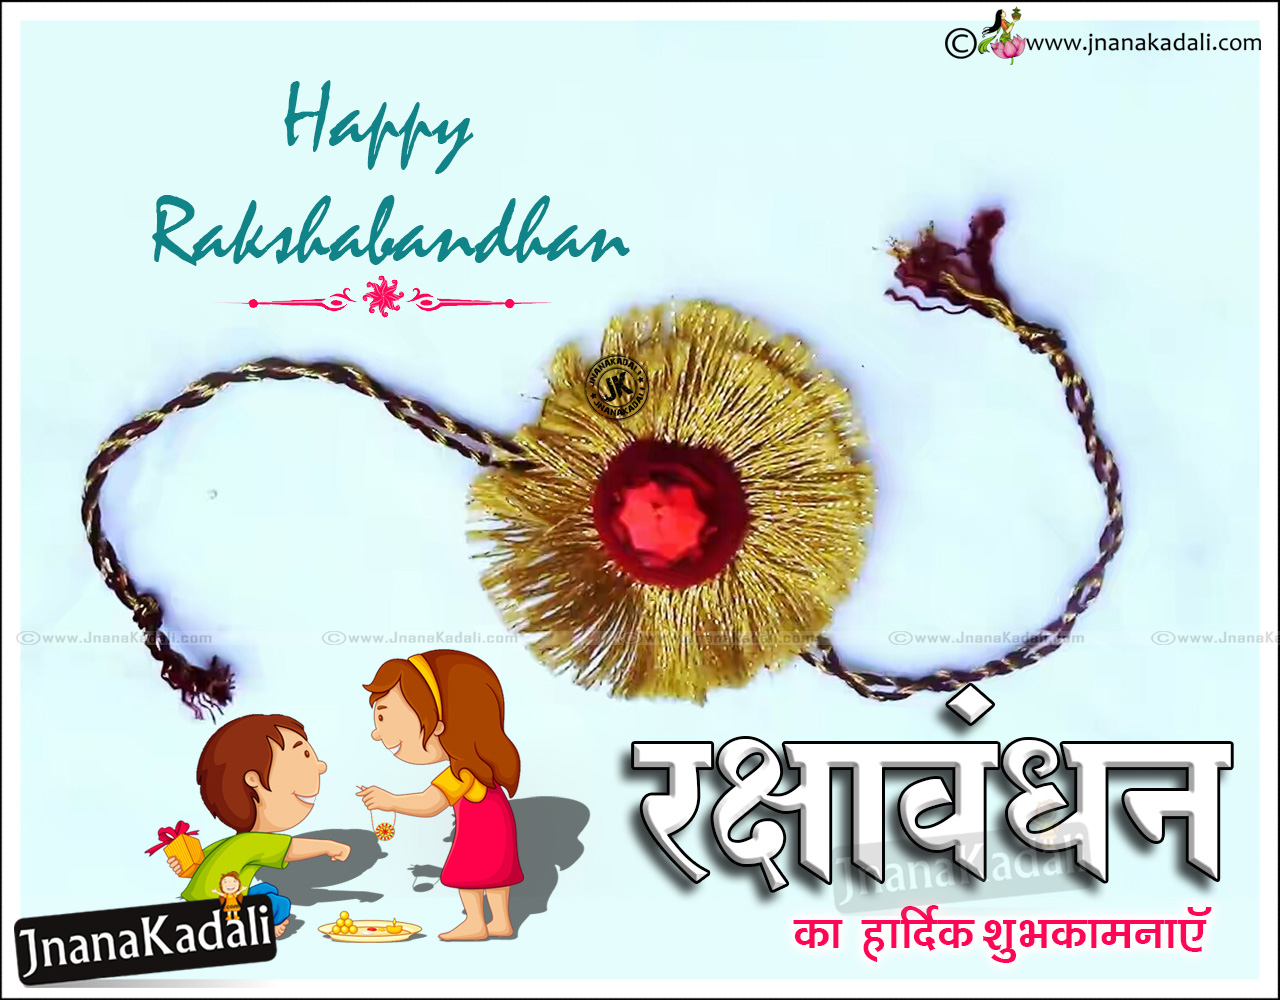 Happy raksha bandhan 2016 hindi quotes greetings shyari jnana here is a 2016 rakhi festival quotations and messages in hindi language popular hindi nice happy raksha bandhan shayari images famous hindi raksha bandhan kristyandbryce Image collections